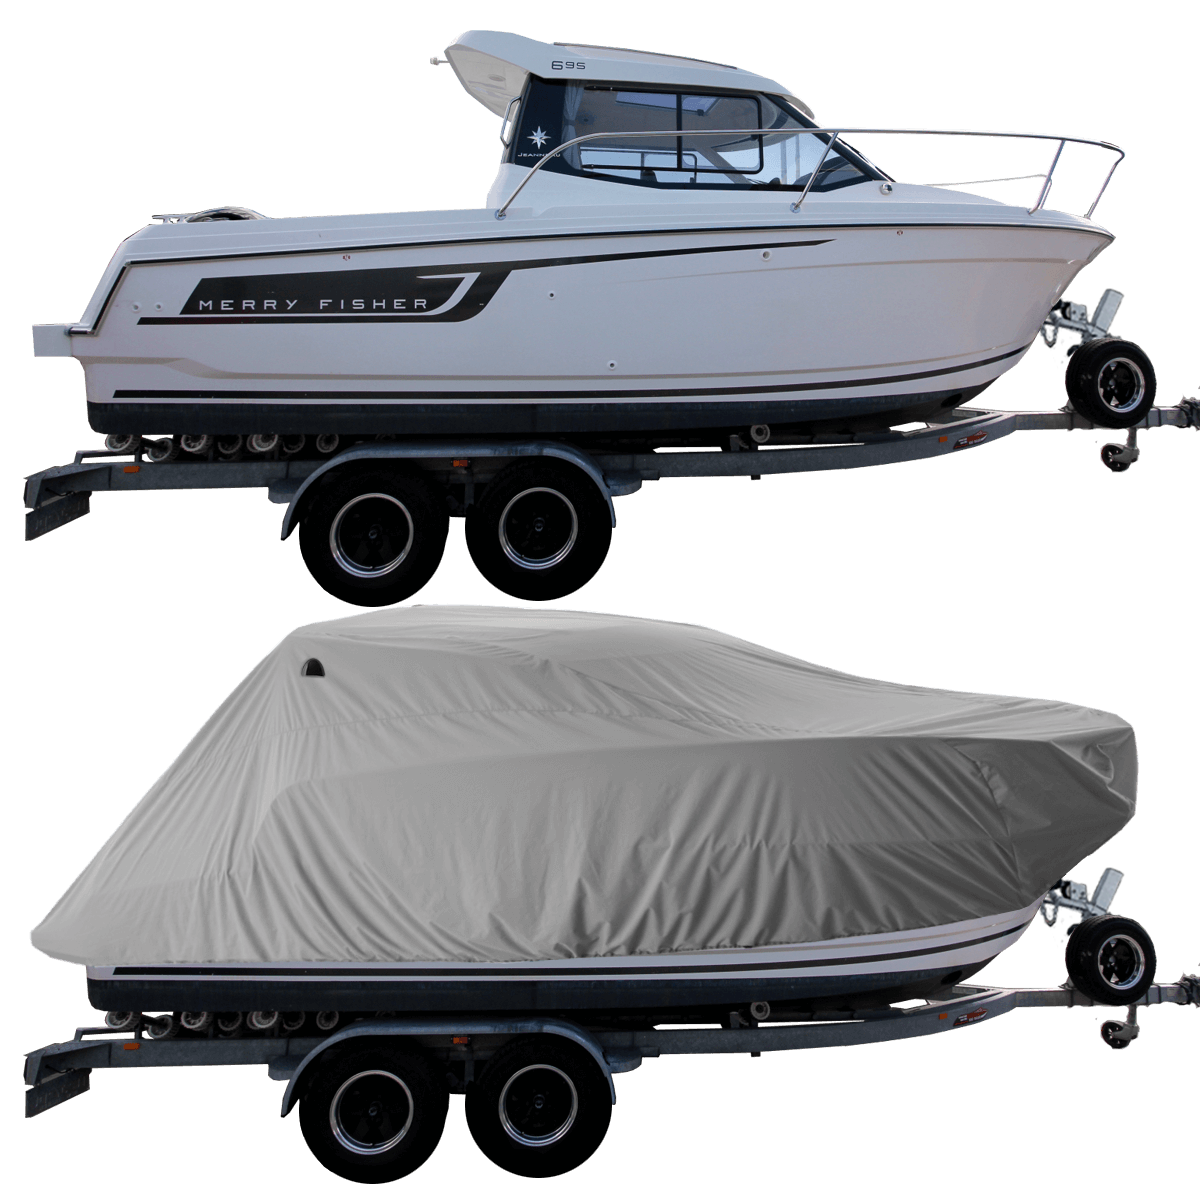 Boat Cover Grey for Merry Fisher Jeanneau 695 Pilot Boat